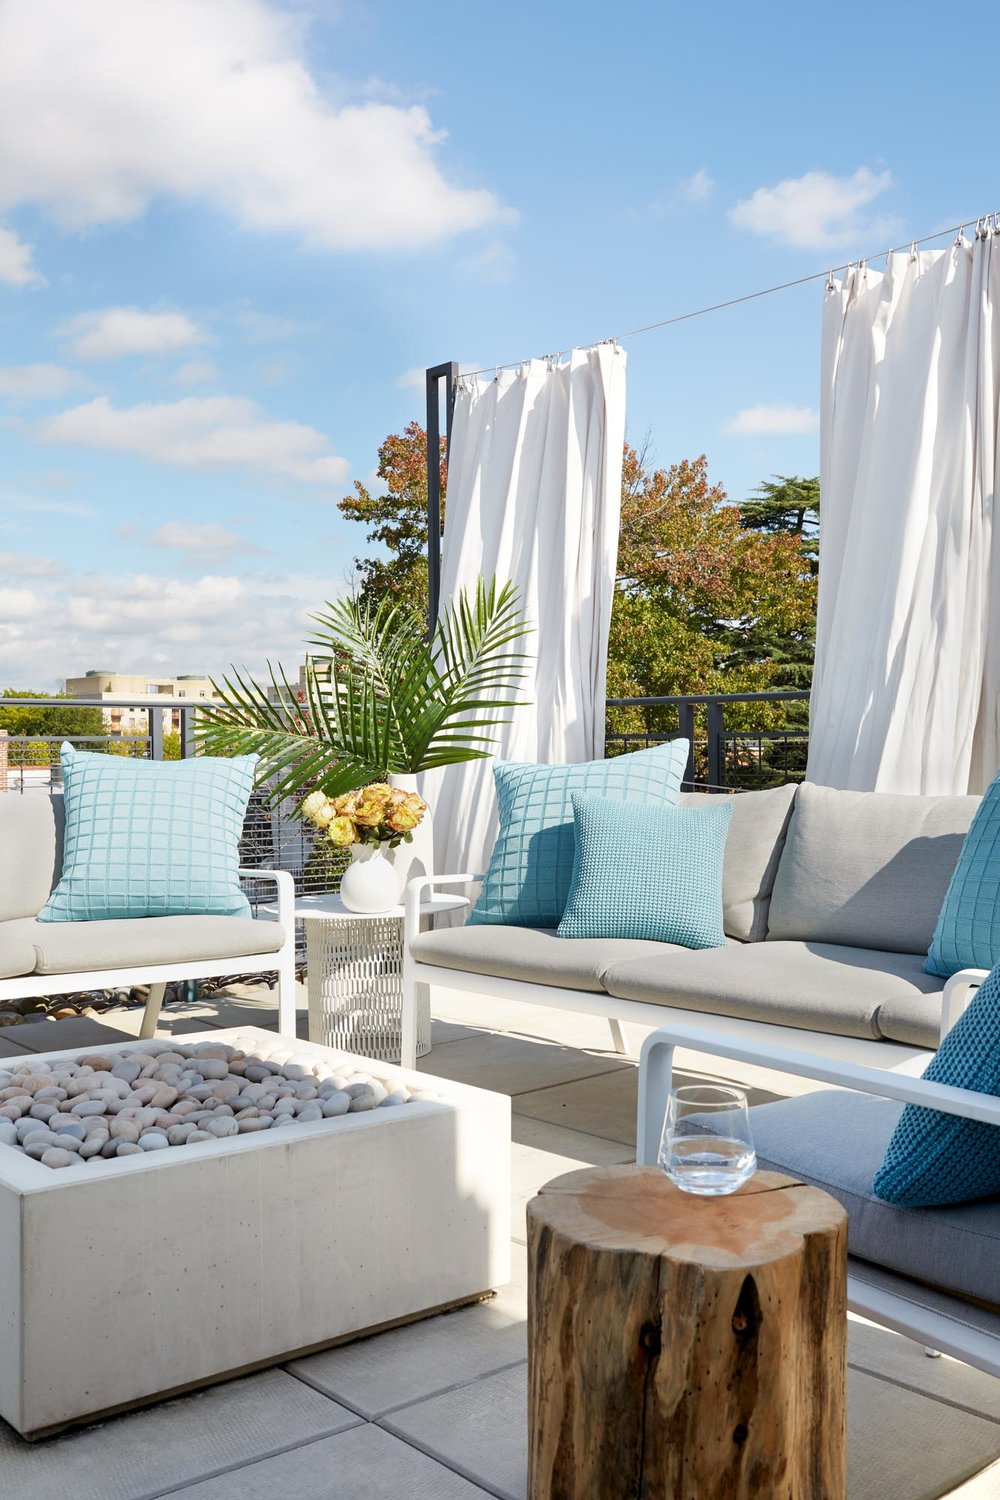 Rooftop patio with light furnishings